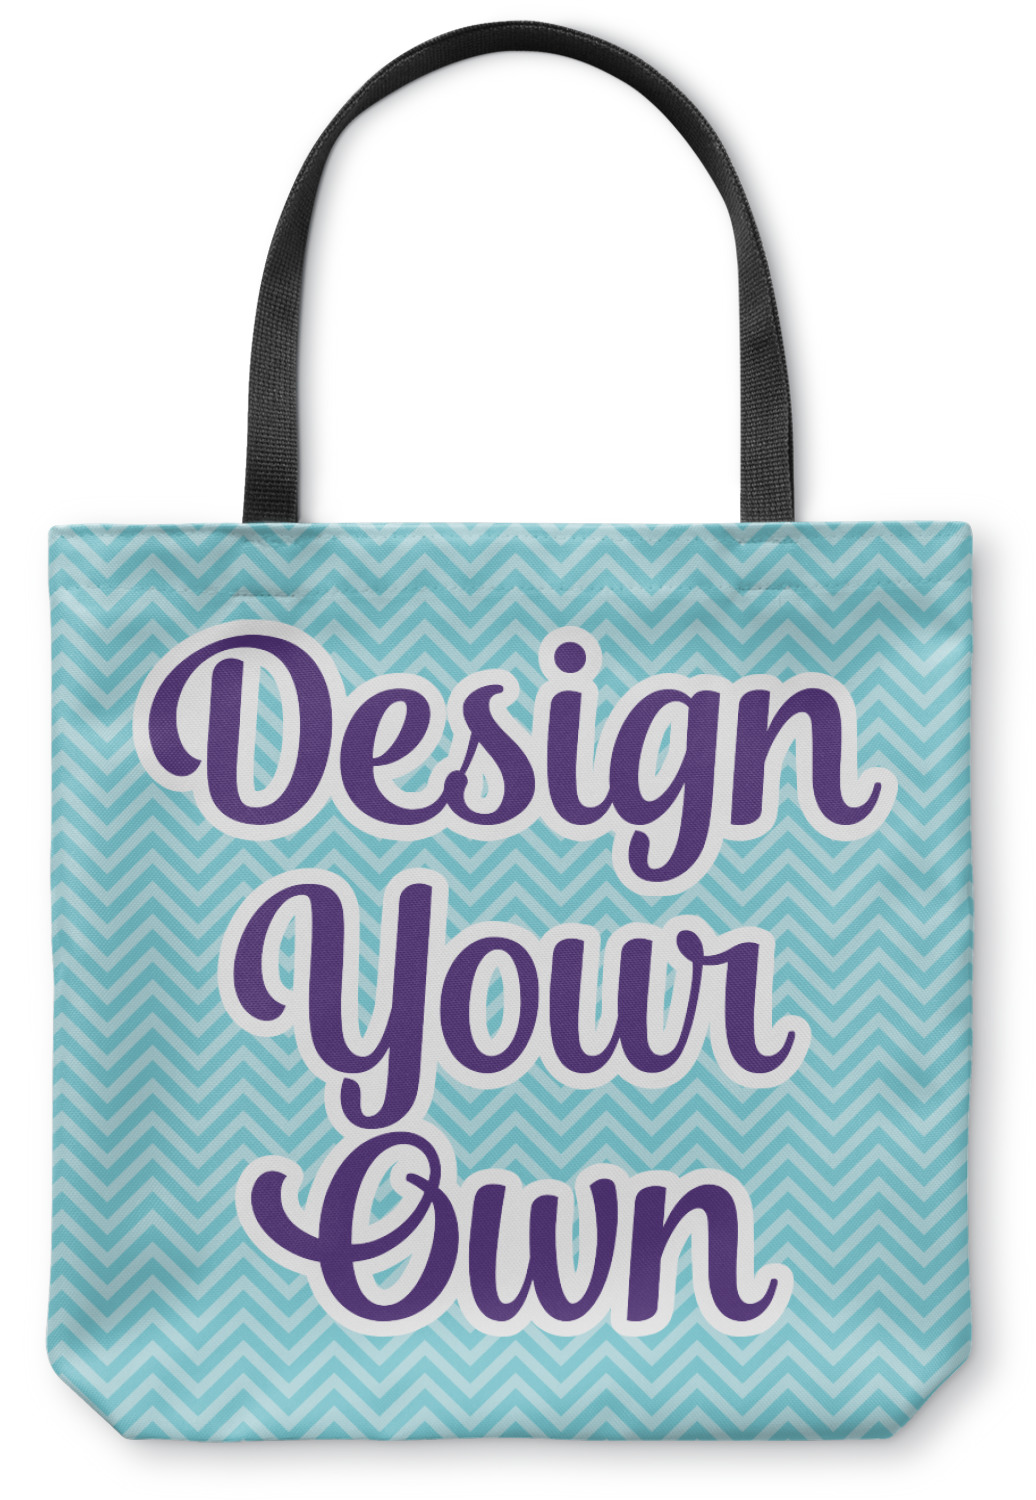 Design Your Own Canvas Tote Bag - Large